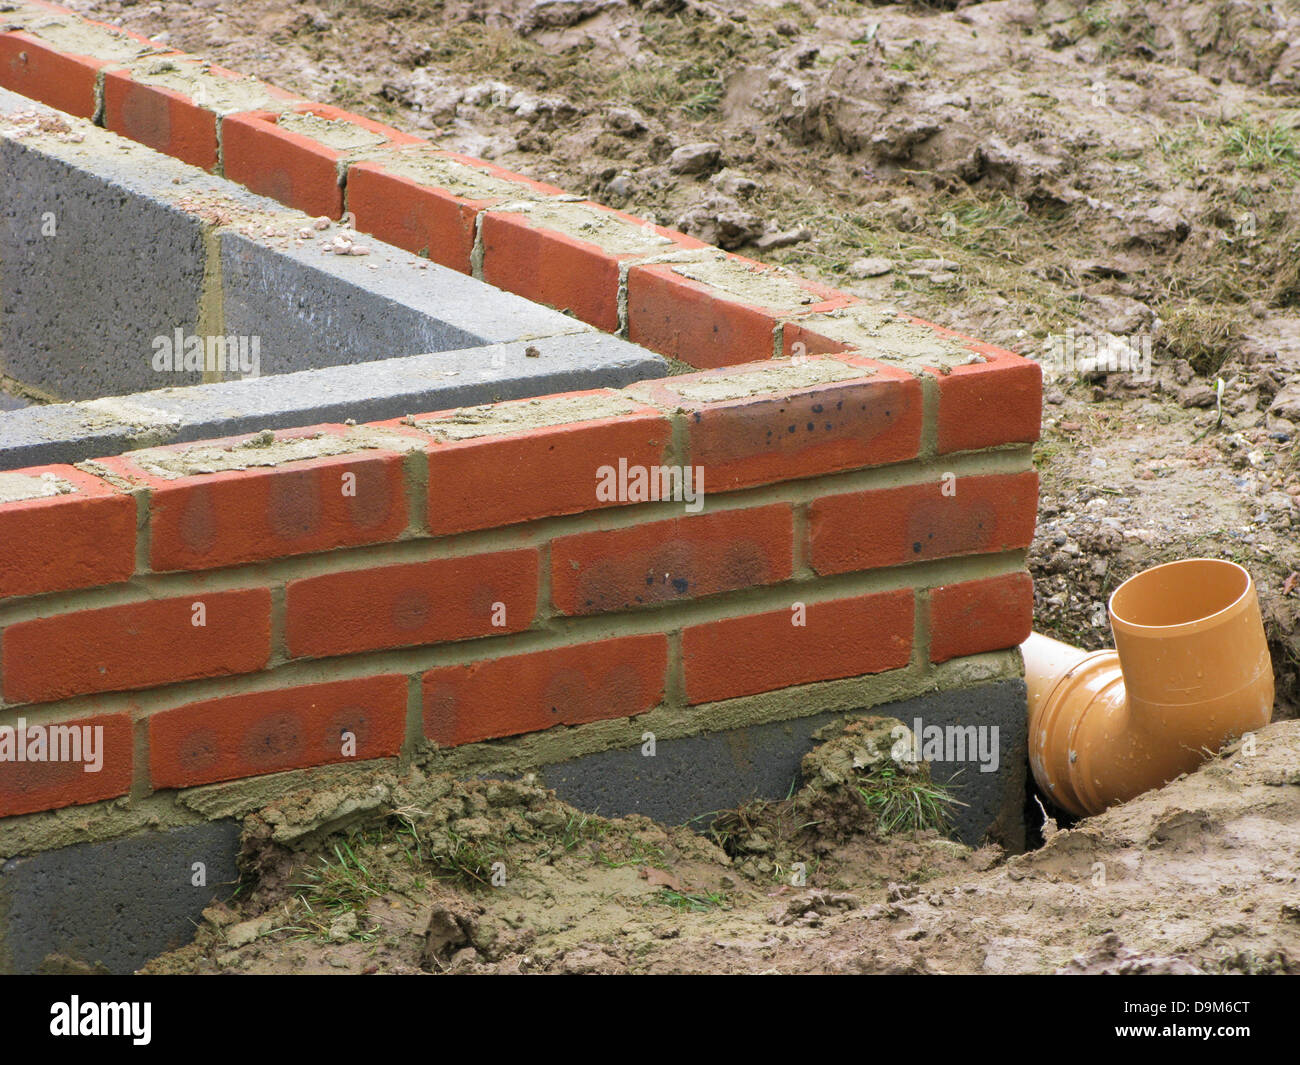 bricks & thermalite bricks built up to the damp course in a wall showing drainage system being put in place - Stock Image